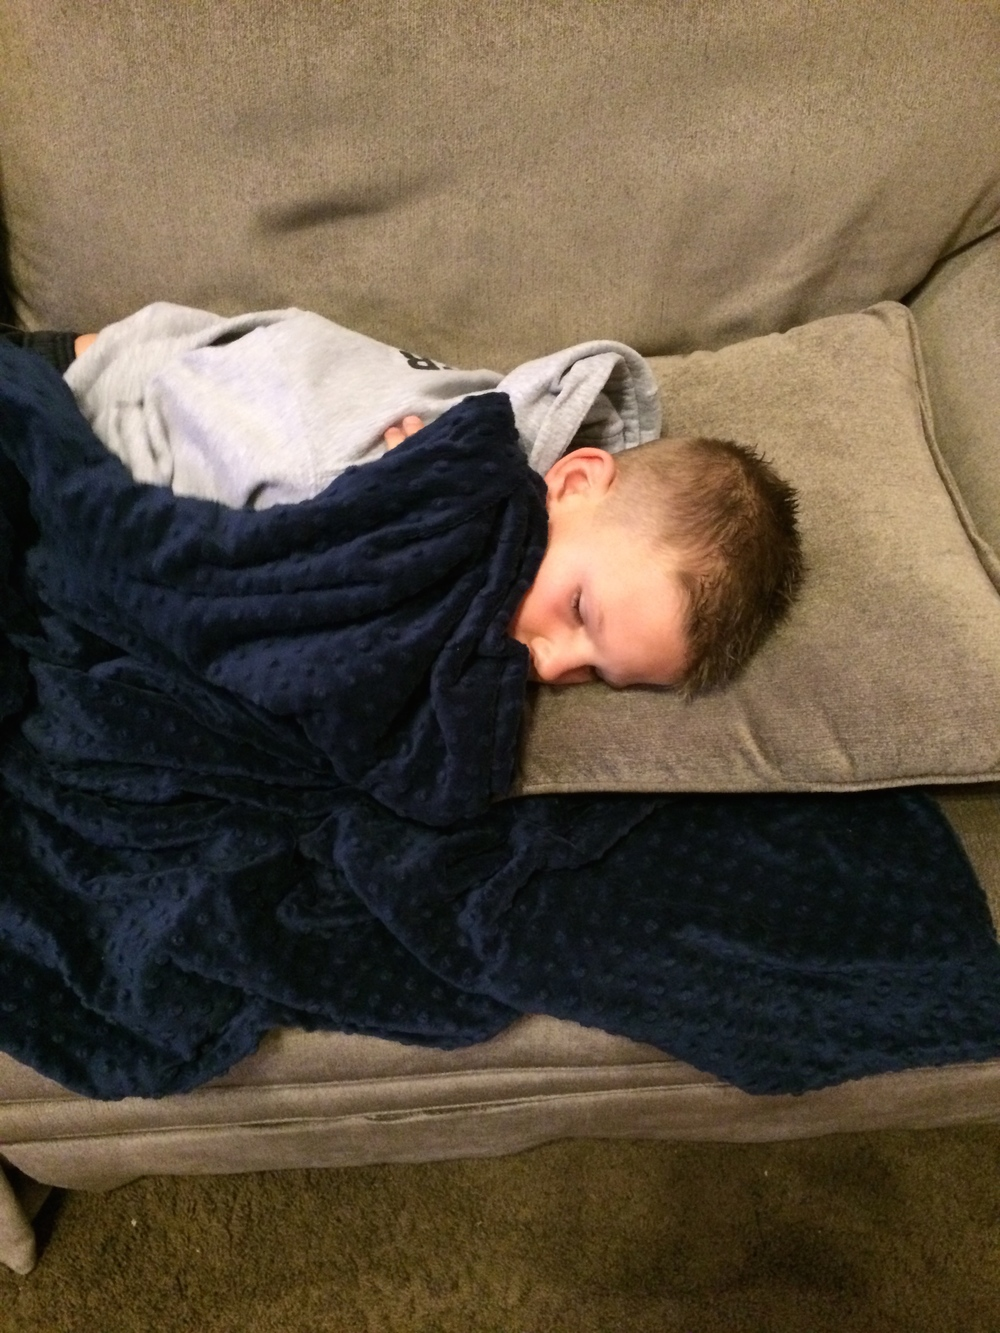 Daxton (8) sick with stomach ache and sore throat